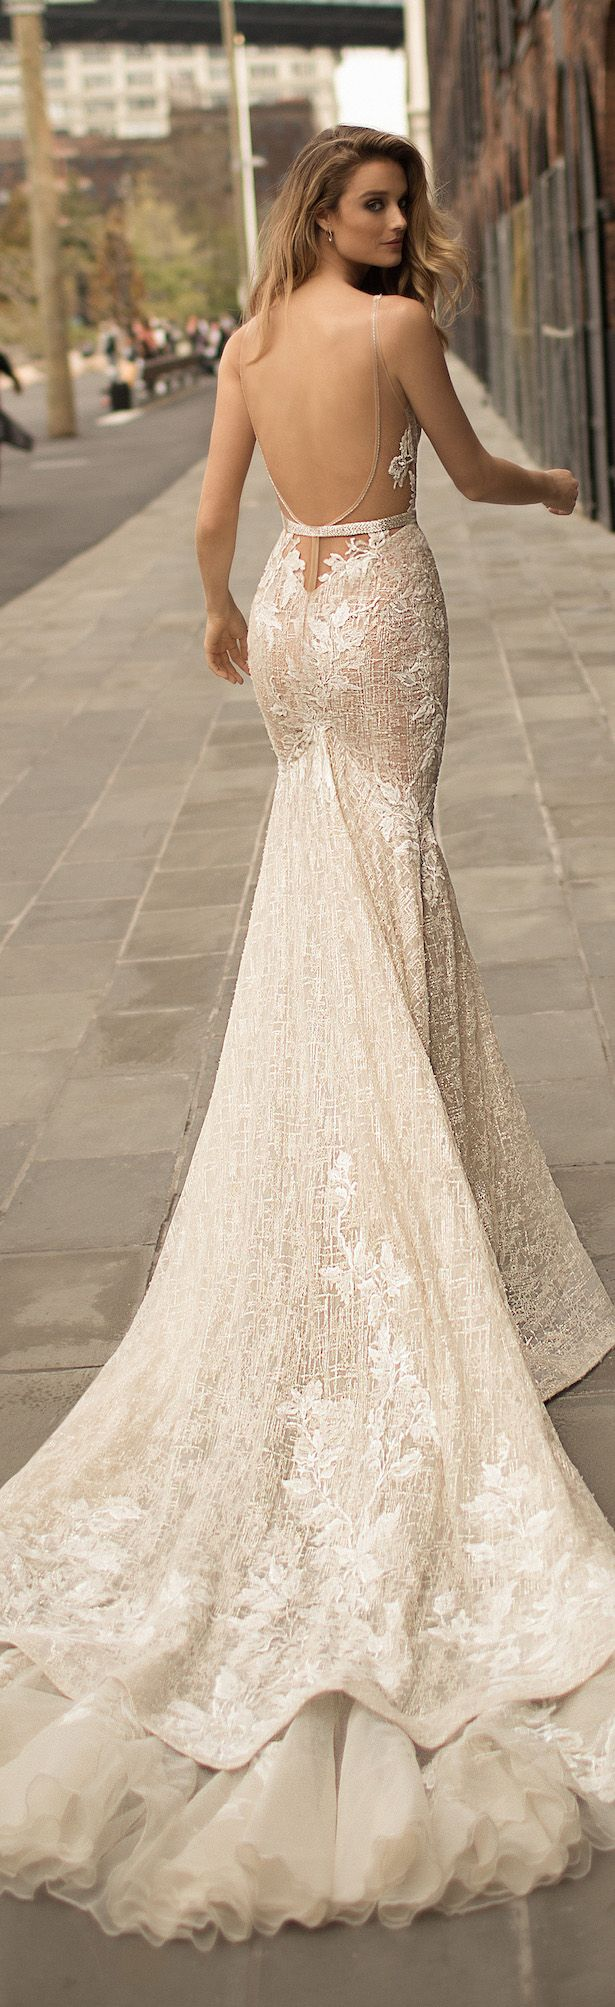 Berta wedding dress collection spring girl pinterest